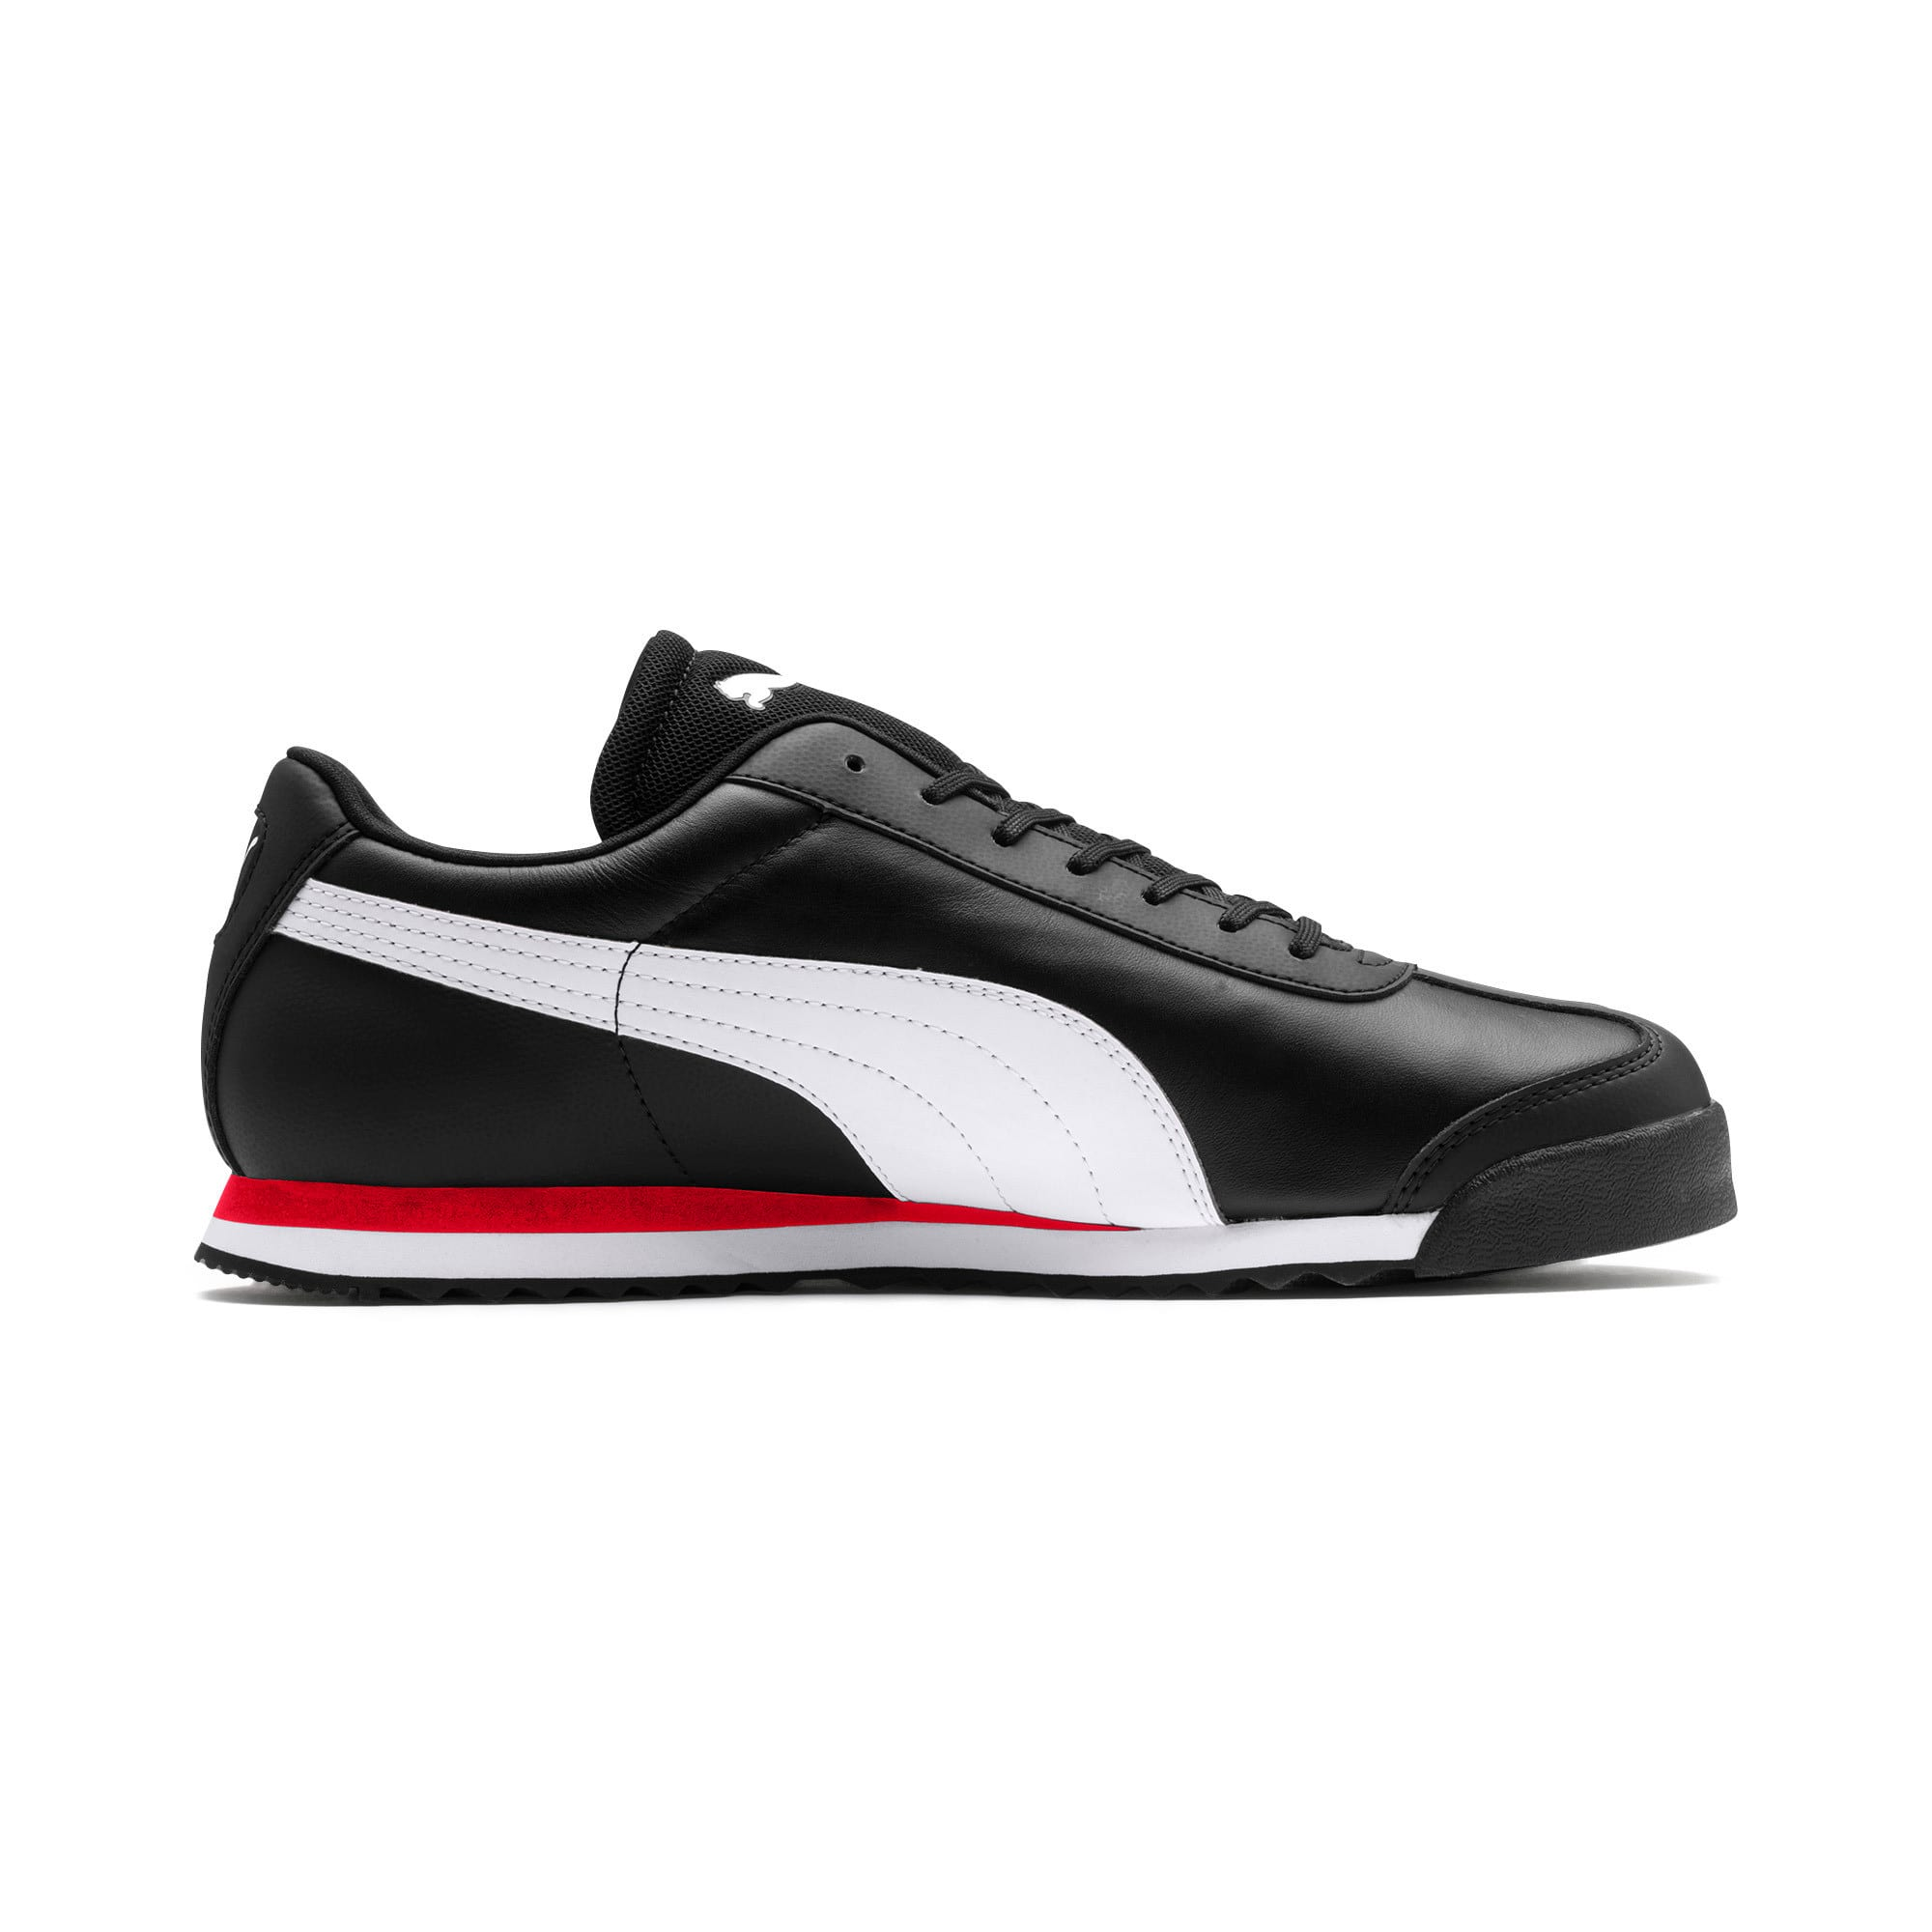 Thumbnail 6 of Scuderia Ferrari Roma Men's Sneakers, Black-White-Rosso Corsa, medium